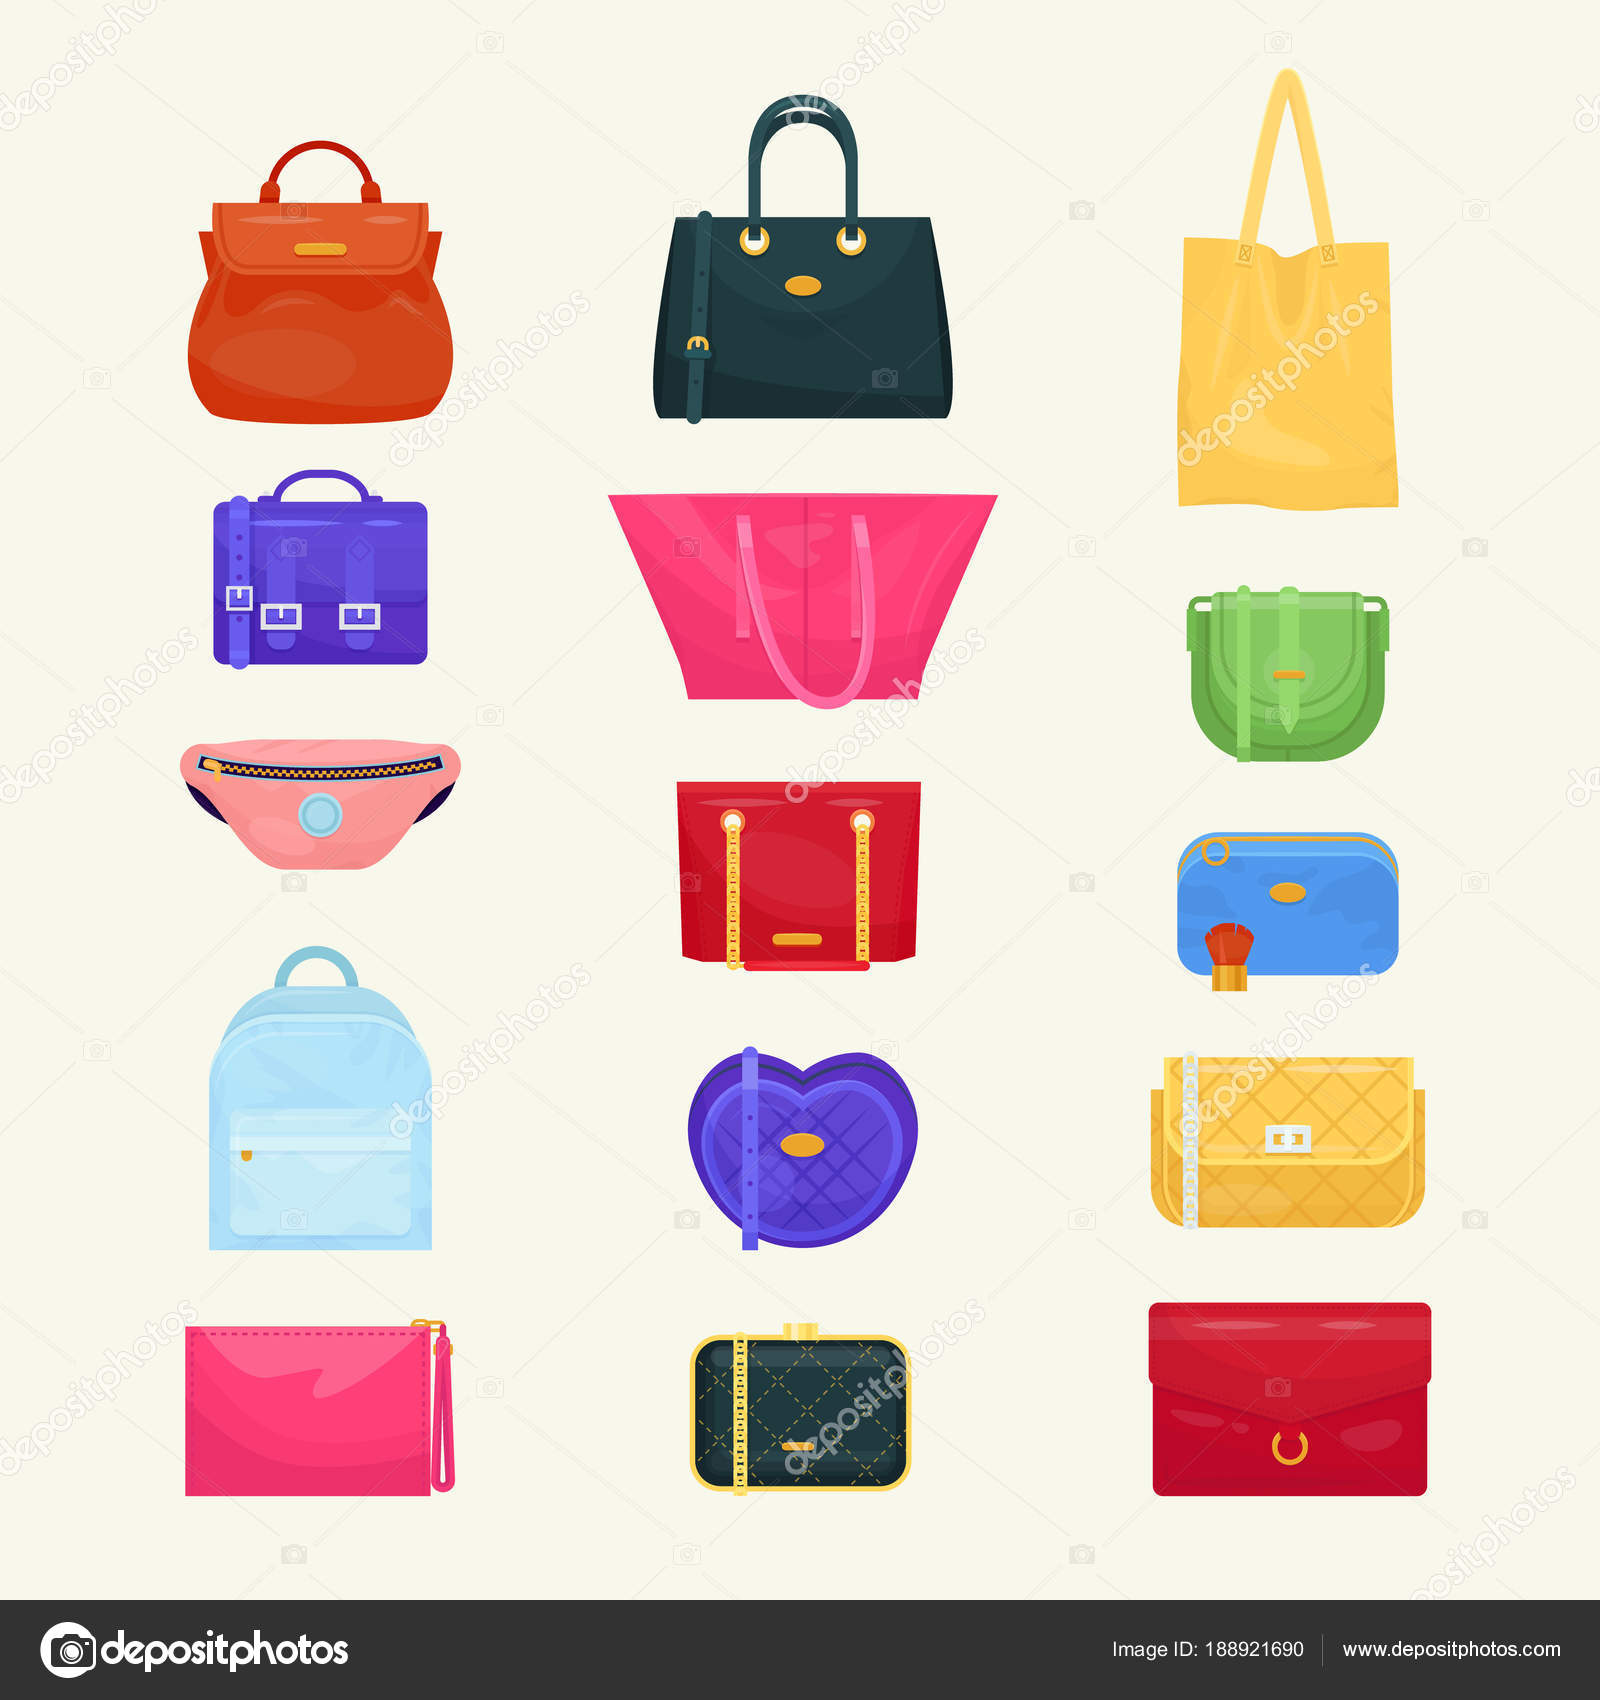 Woman bag vector girls handbag or purse and shopping-bag or baggy package  from fashion store illustration set of shoppers bagged package isolated on  ... 3455b02cdb